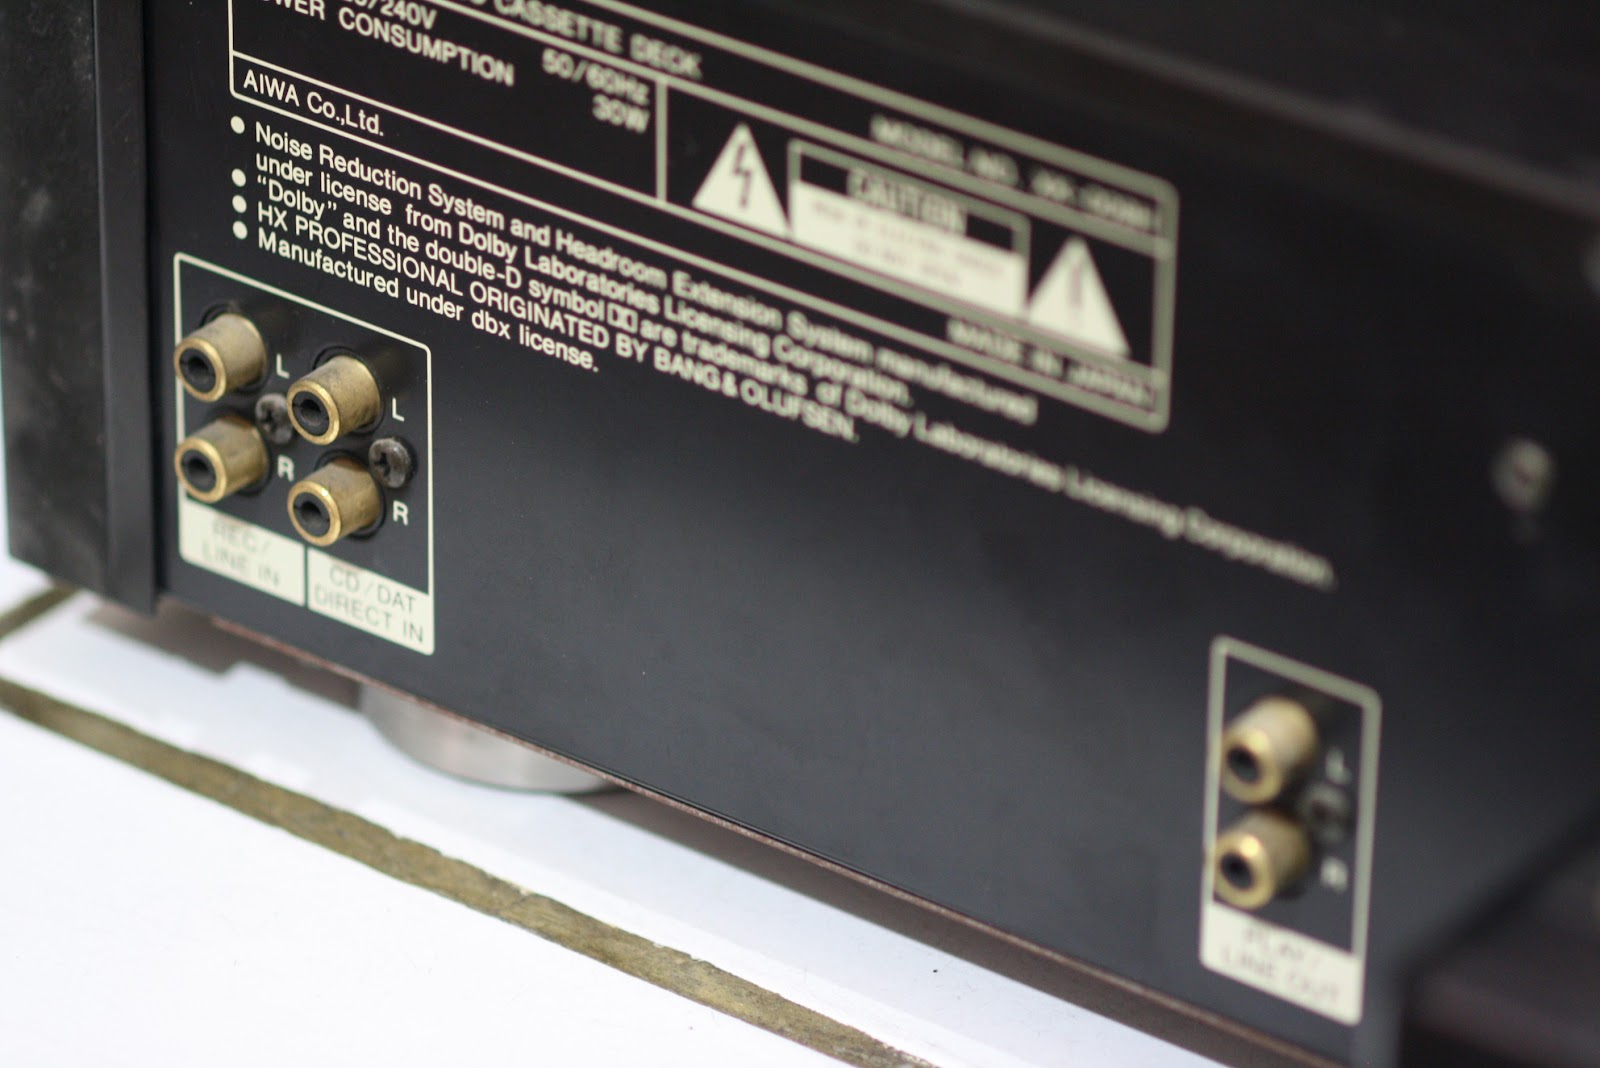 Audio2nd September 2012 Amp Schematic Http Homeproviewcom Ecl82amplifierschematichtm Info From Audio Extasa Aiwa Xk 009 Excelia Cassette Tape Deck In Orig Box Some Technical Data Manufacturer Japan